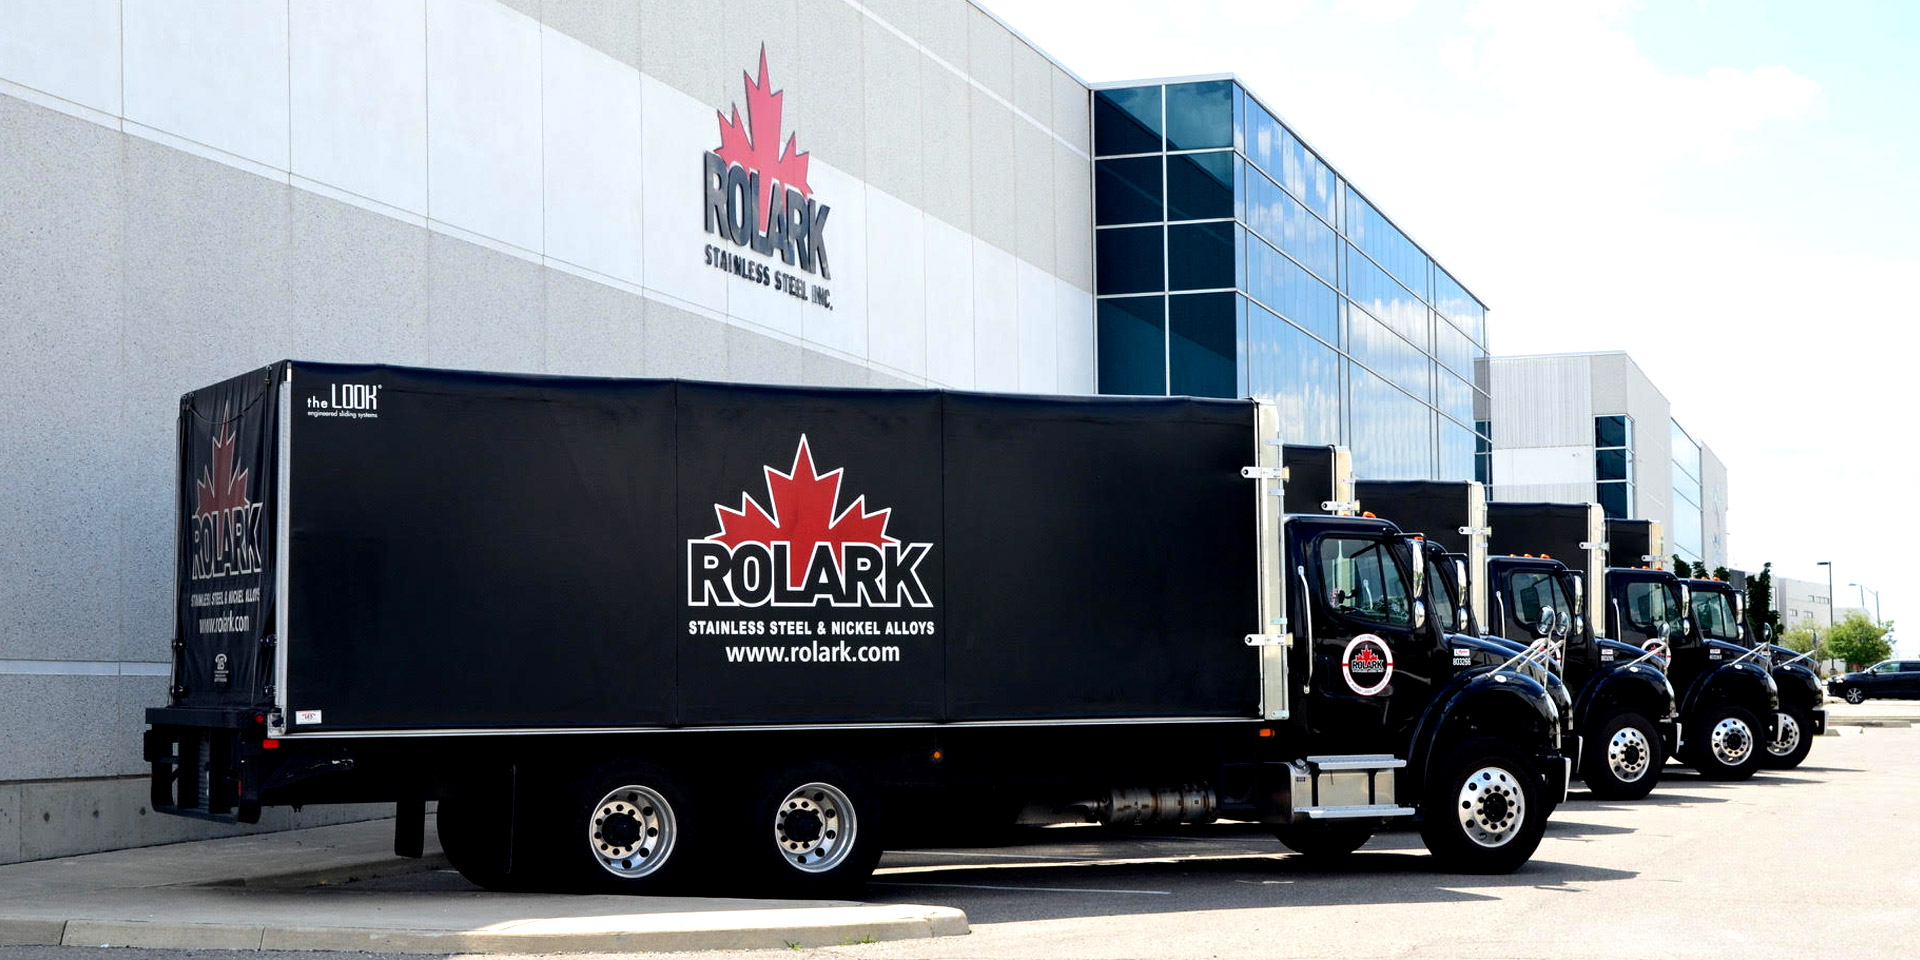 Several black Rolark trucks parked in front a a Rolark warehouse